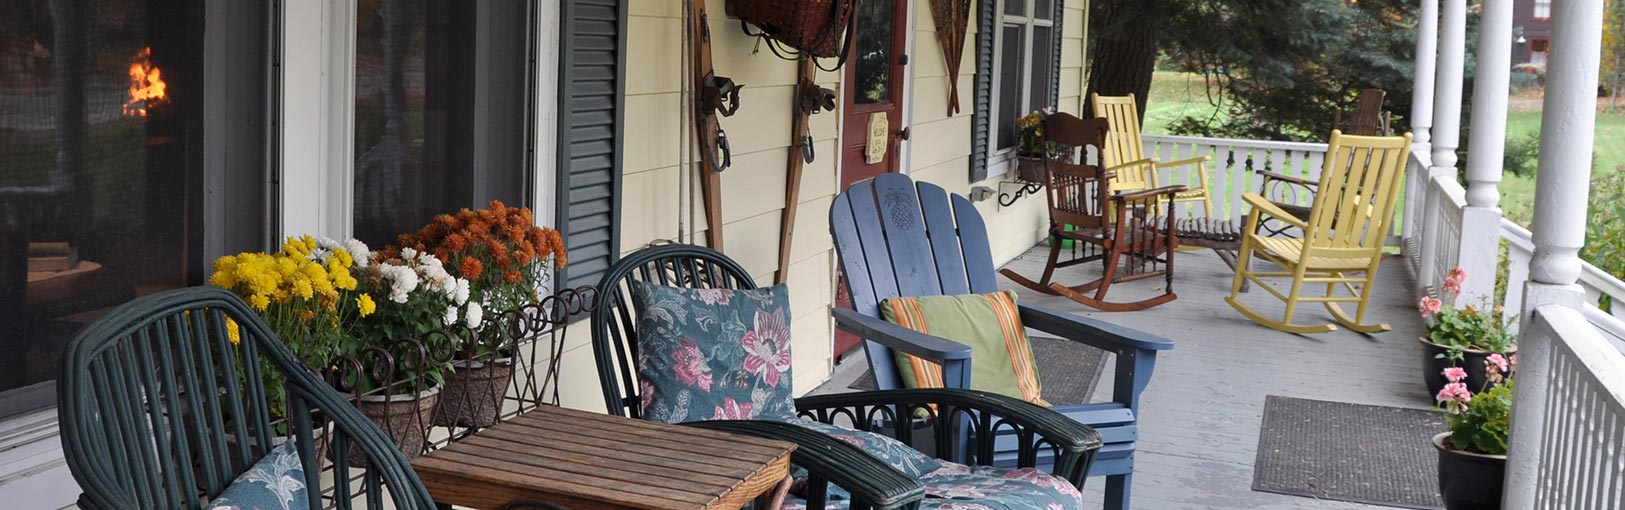 Seating on the front porch